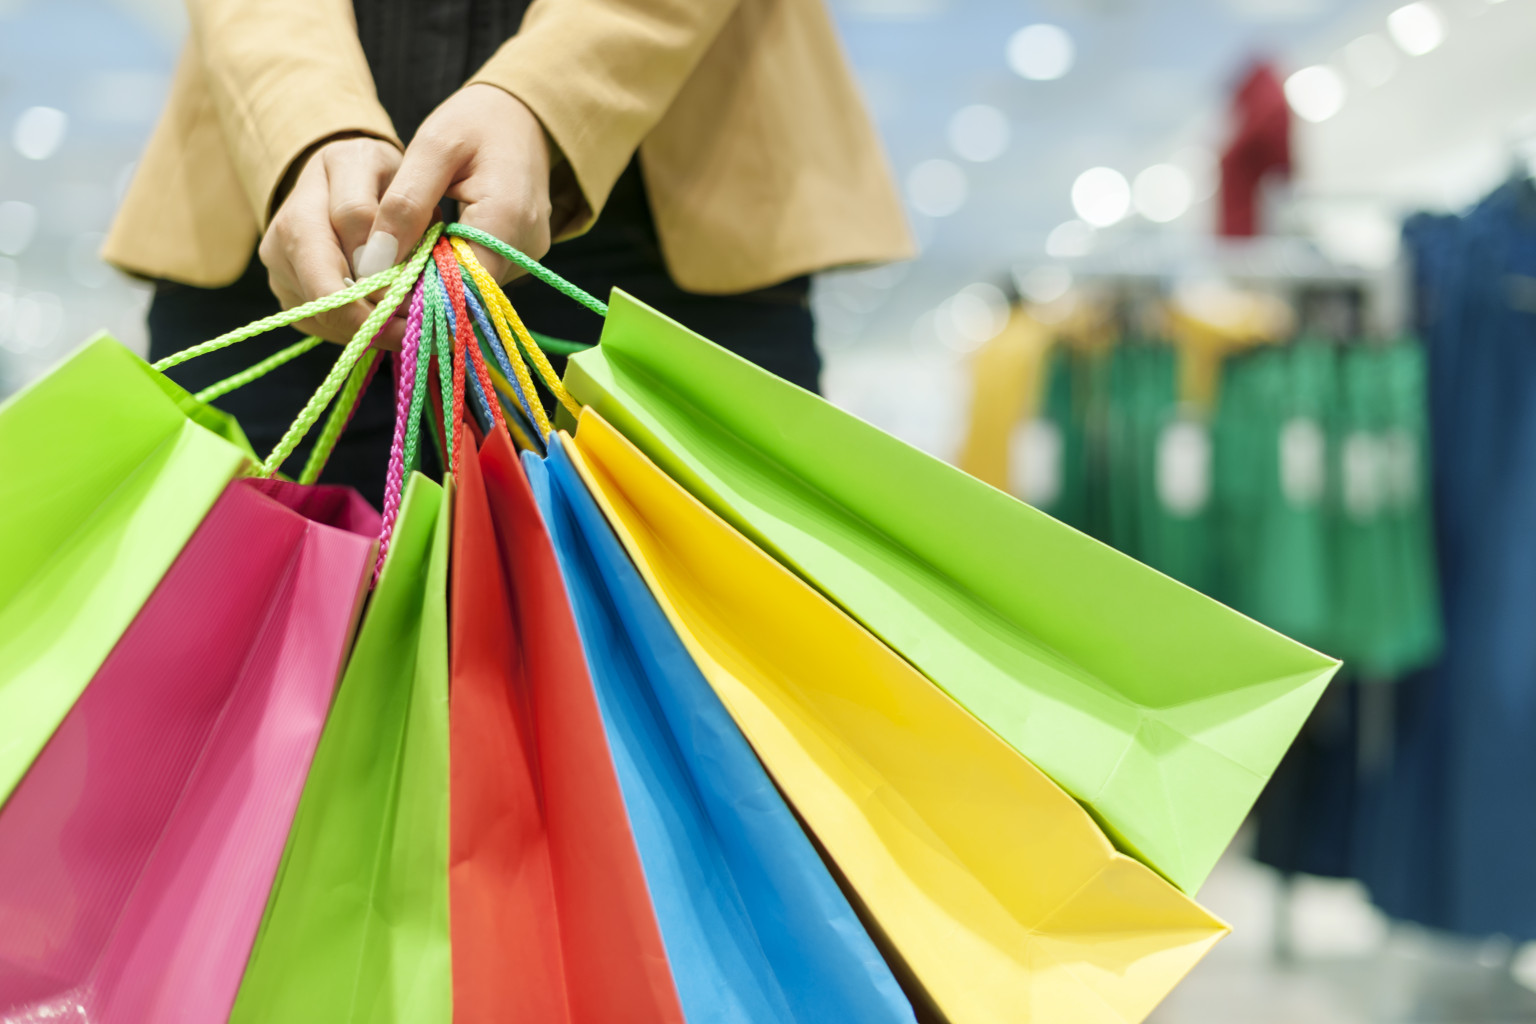 an essay on compulsive shopping and women shopaholics According to the article, shopaholics are people obsessed with shopping less people suffer from compulsive buying than in the past according to the article, more women than man are shopaholics.